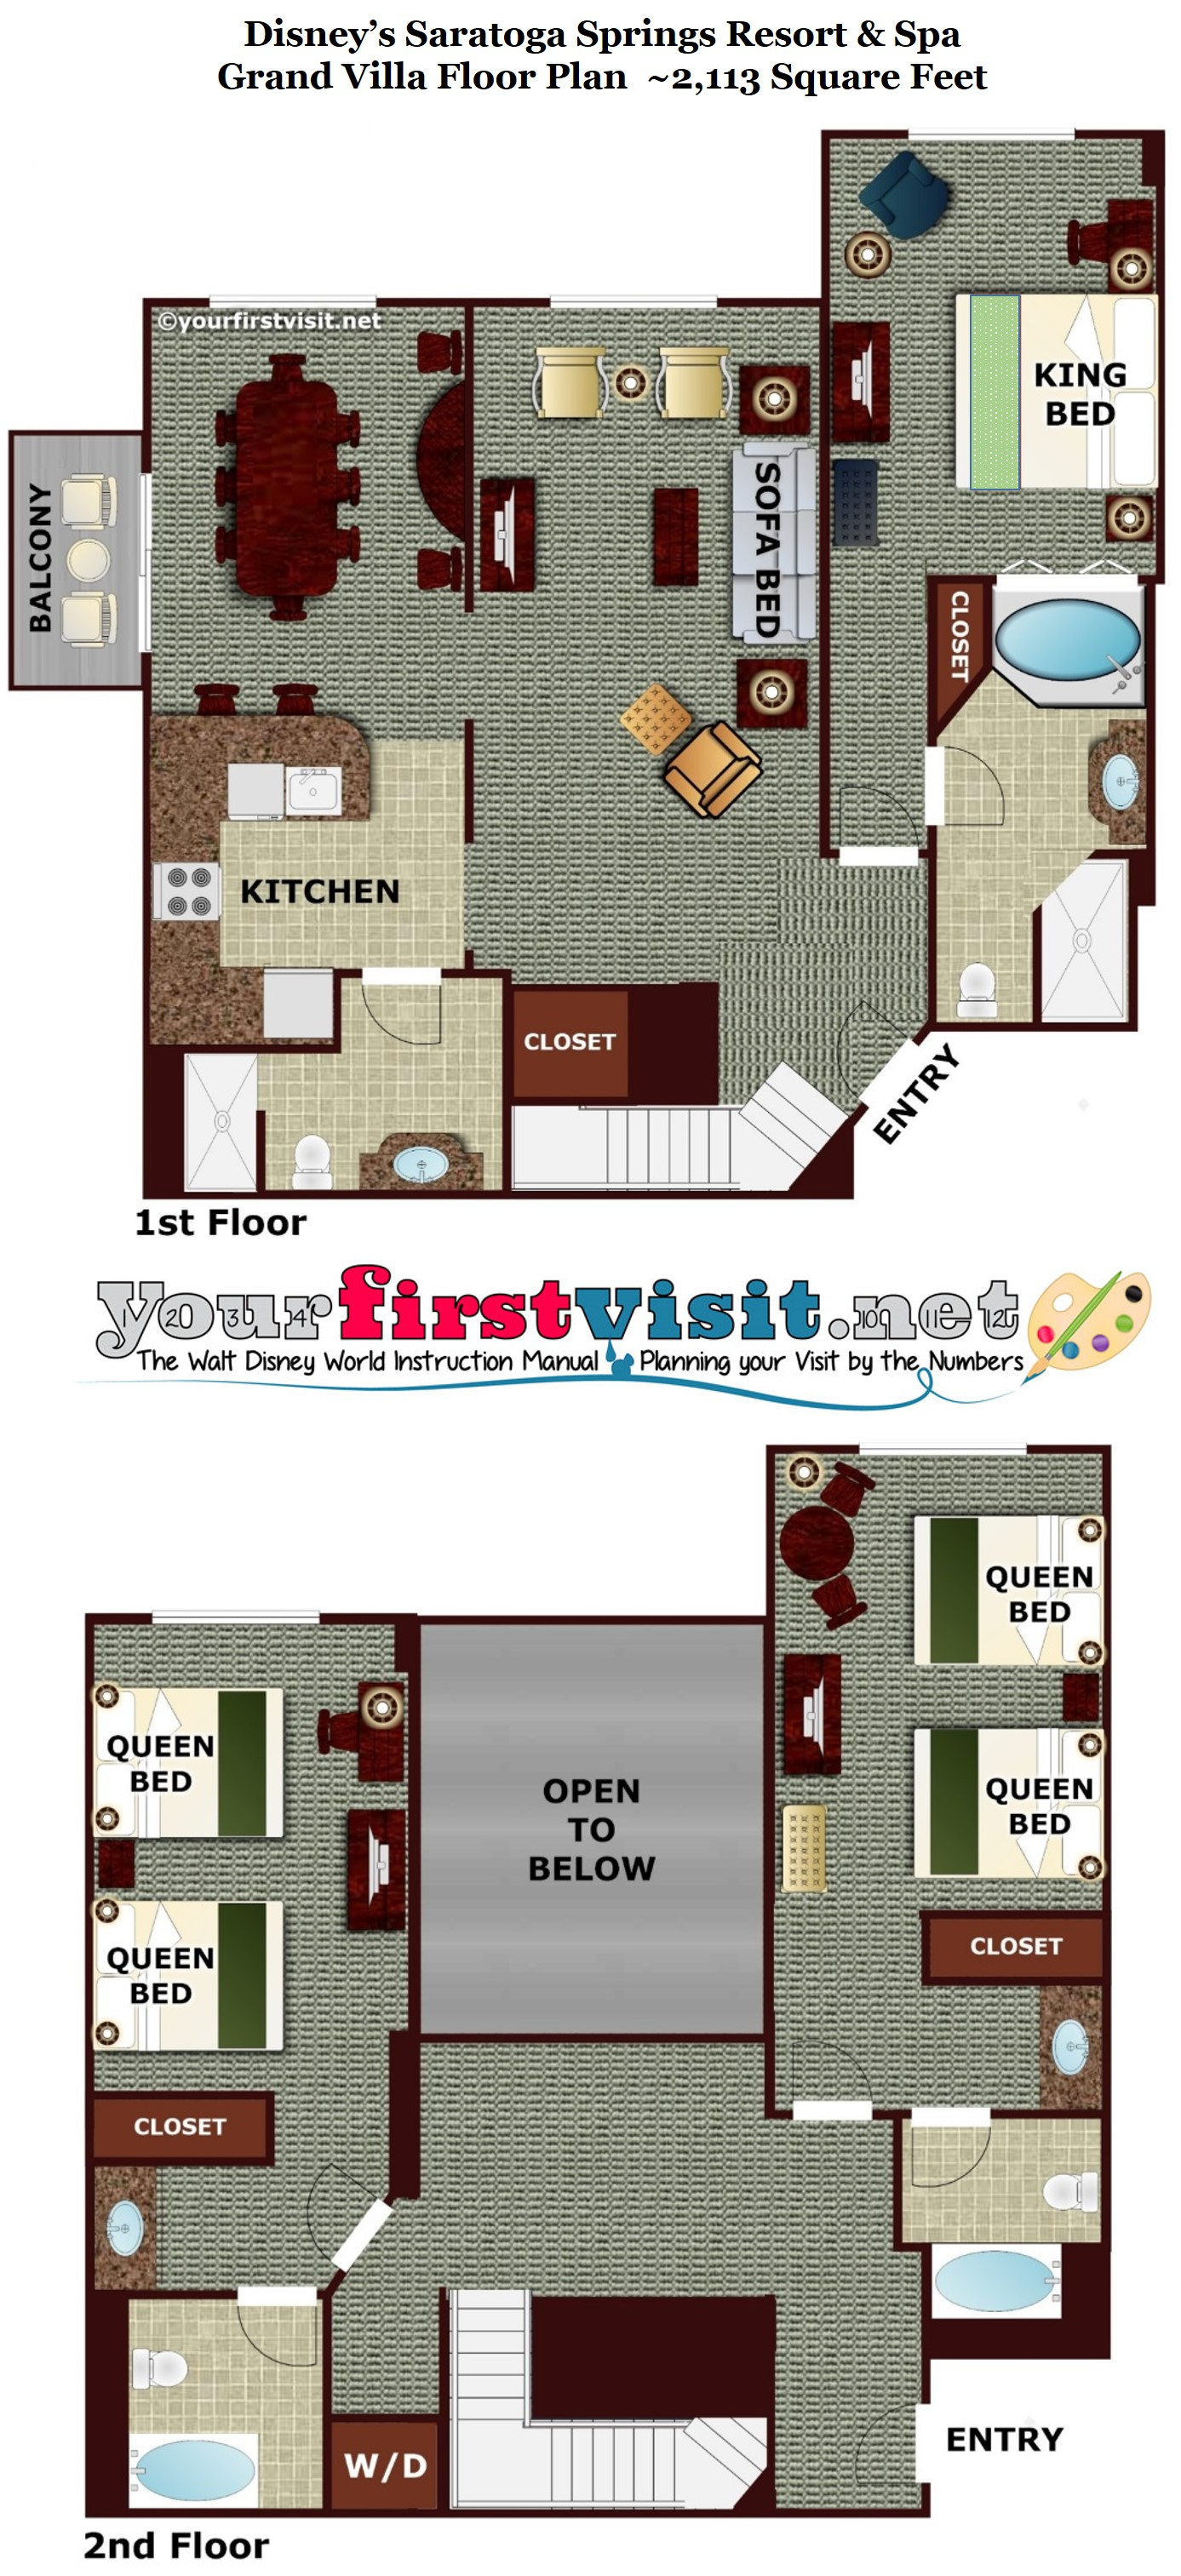 Saratoga Springs Grand Villa Floor Plan Carpet Review